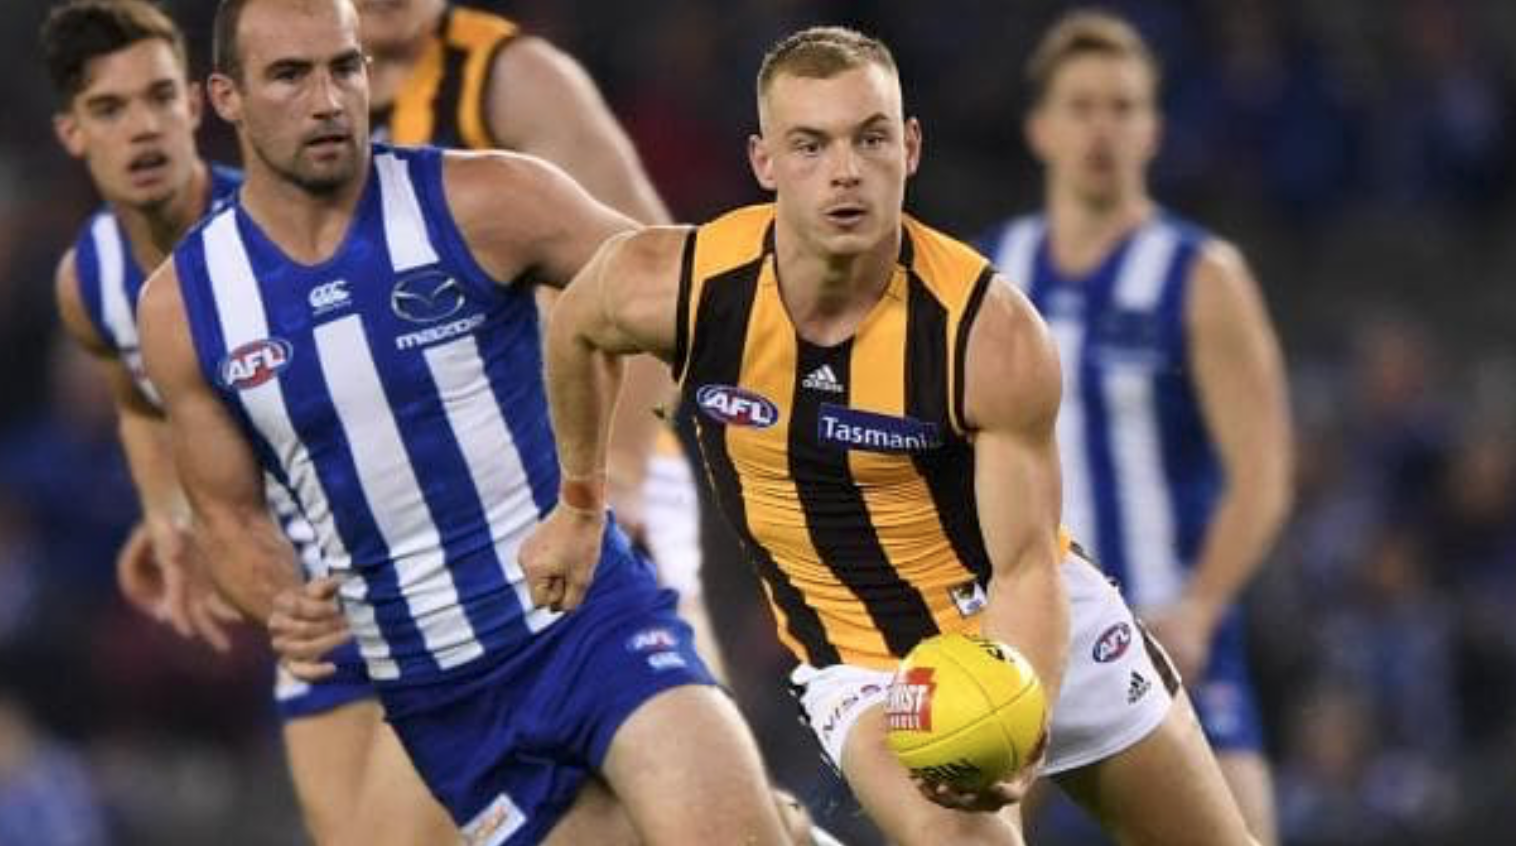 AFL 2019 Fantasy Tips: Round 22 Sunday Slate